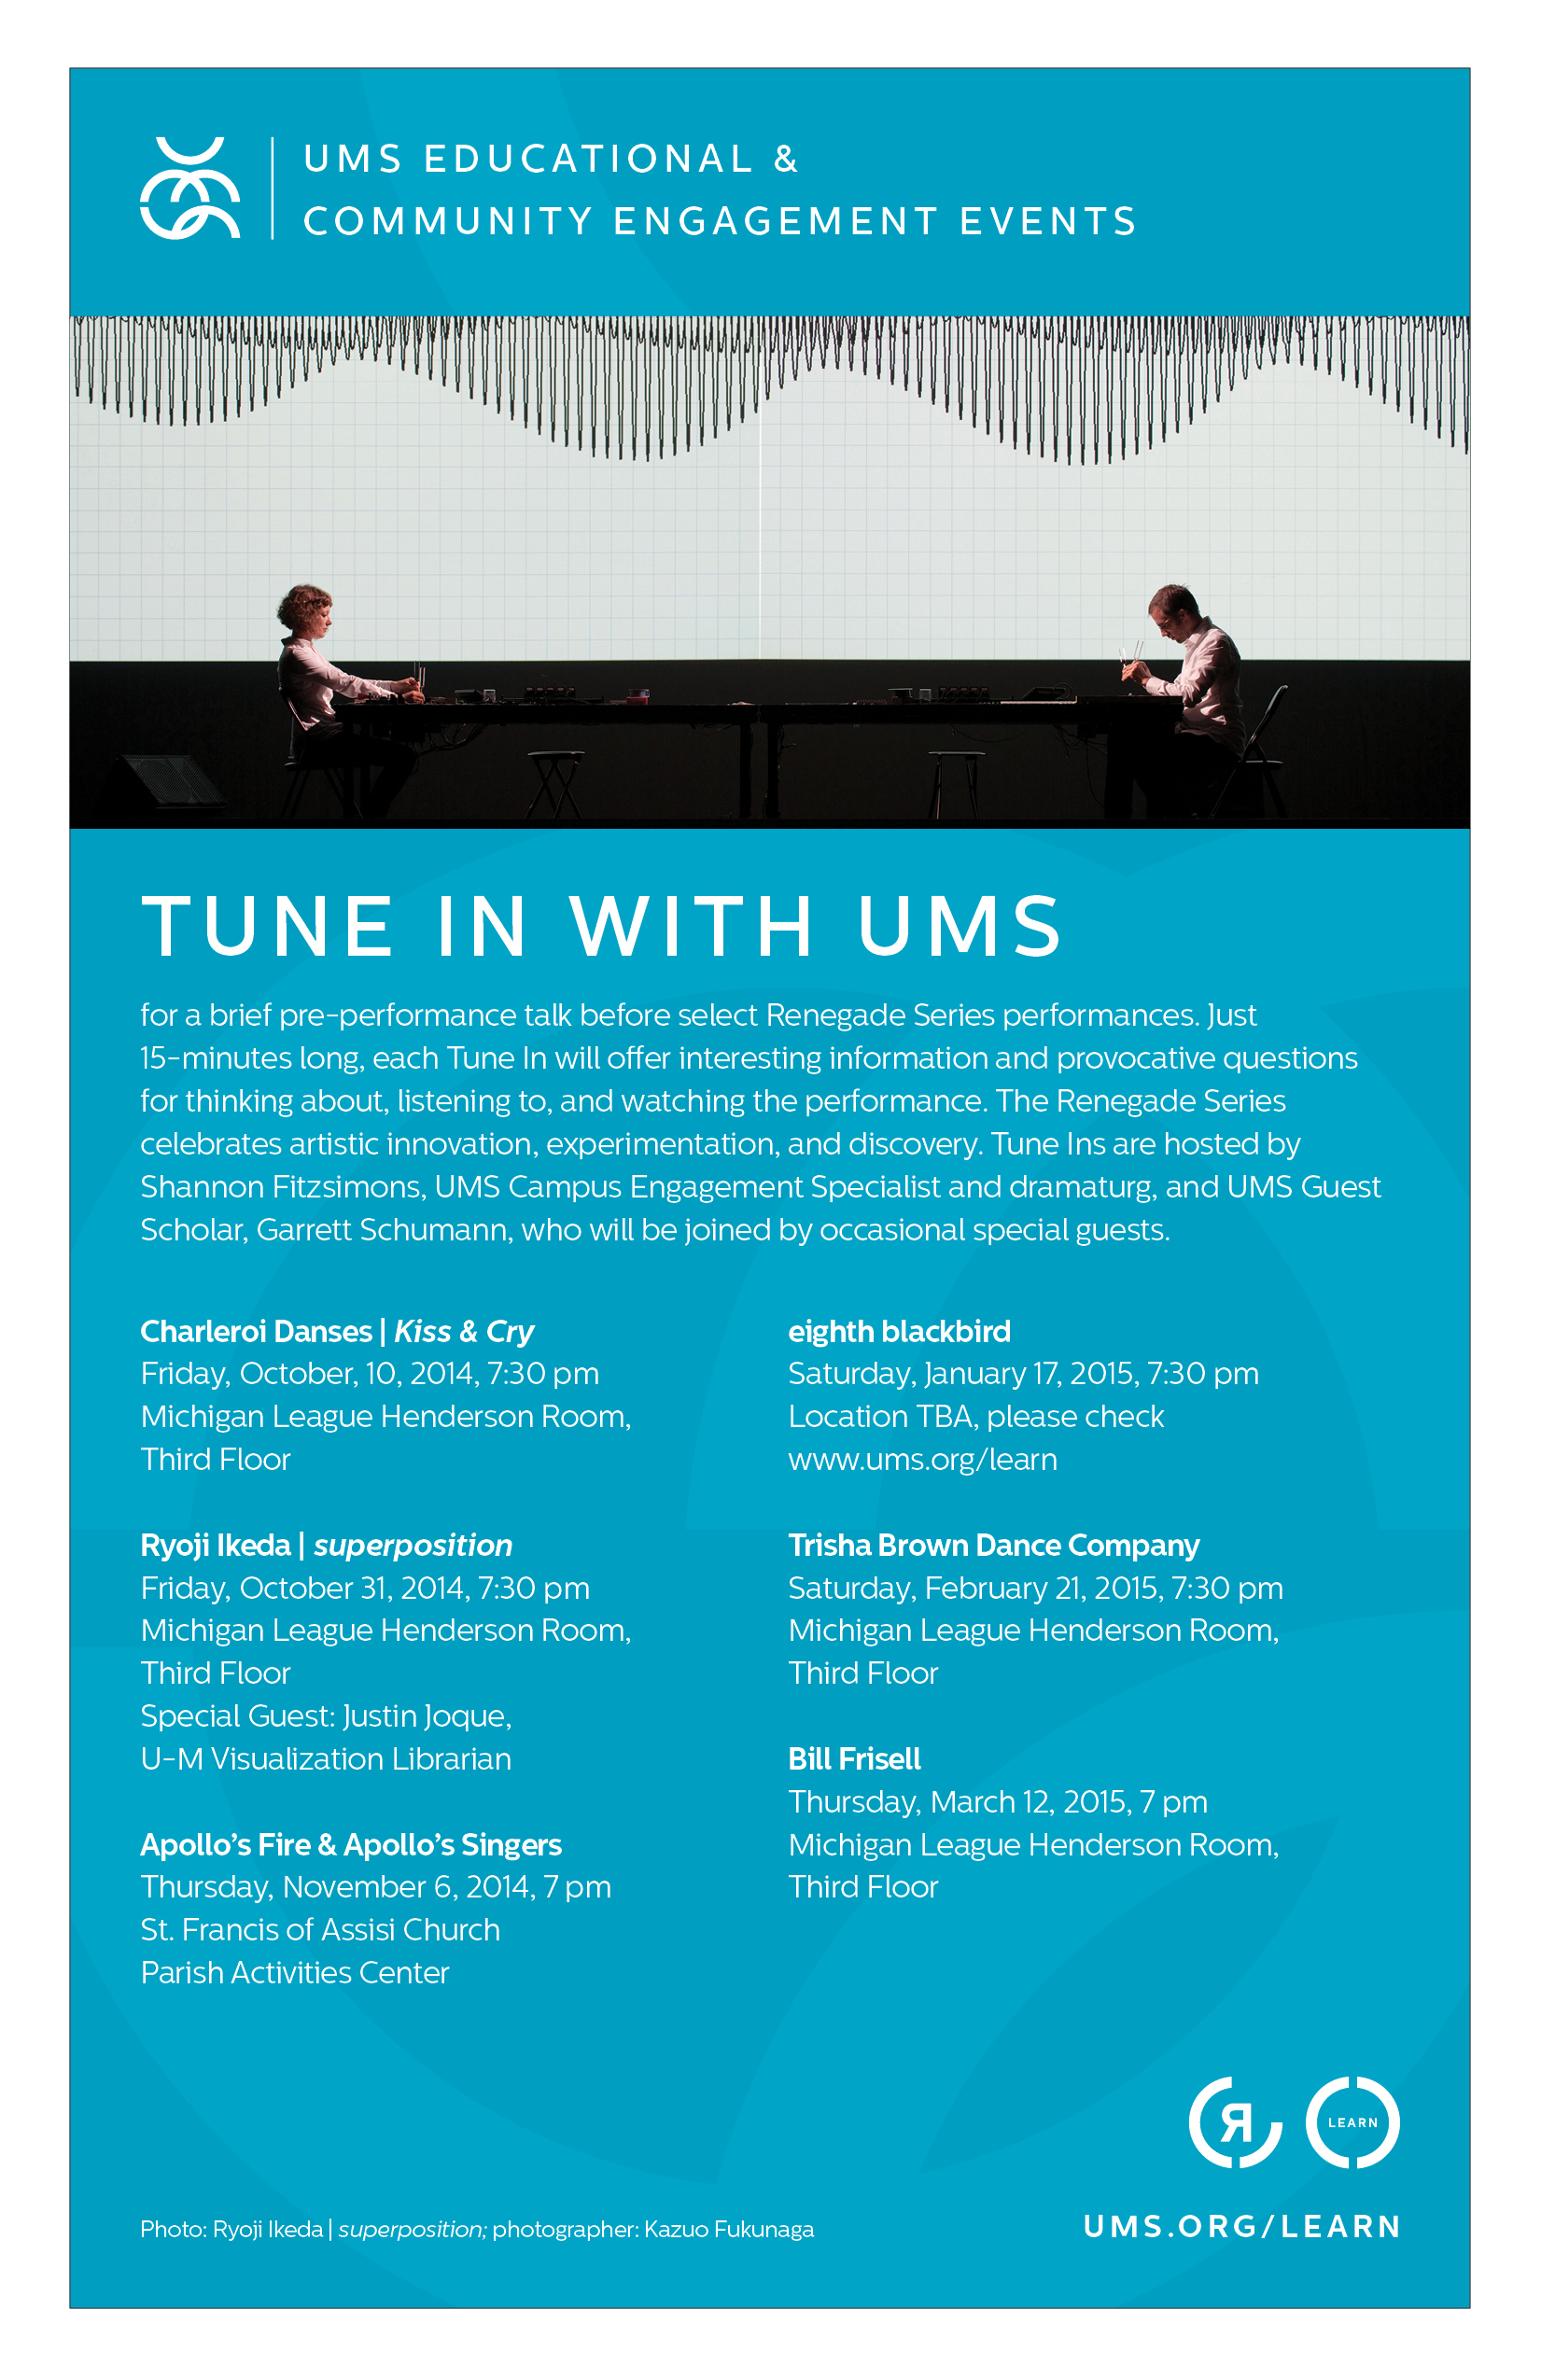 UMS Concert Program, September 14 - October 12, 2014:  Itzhak Perlman; Emerson String Quartet; Kiss & Cry, Charleroi Danses image